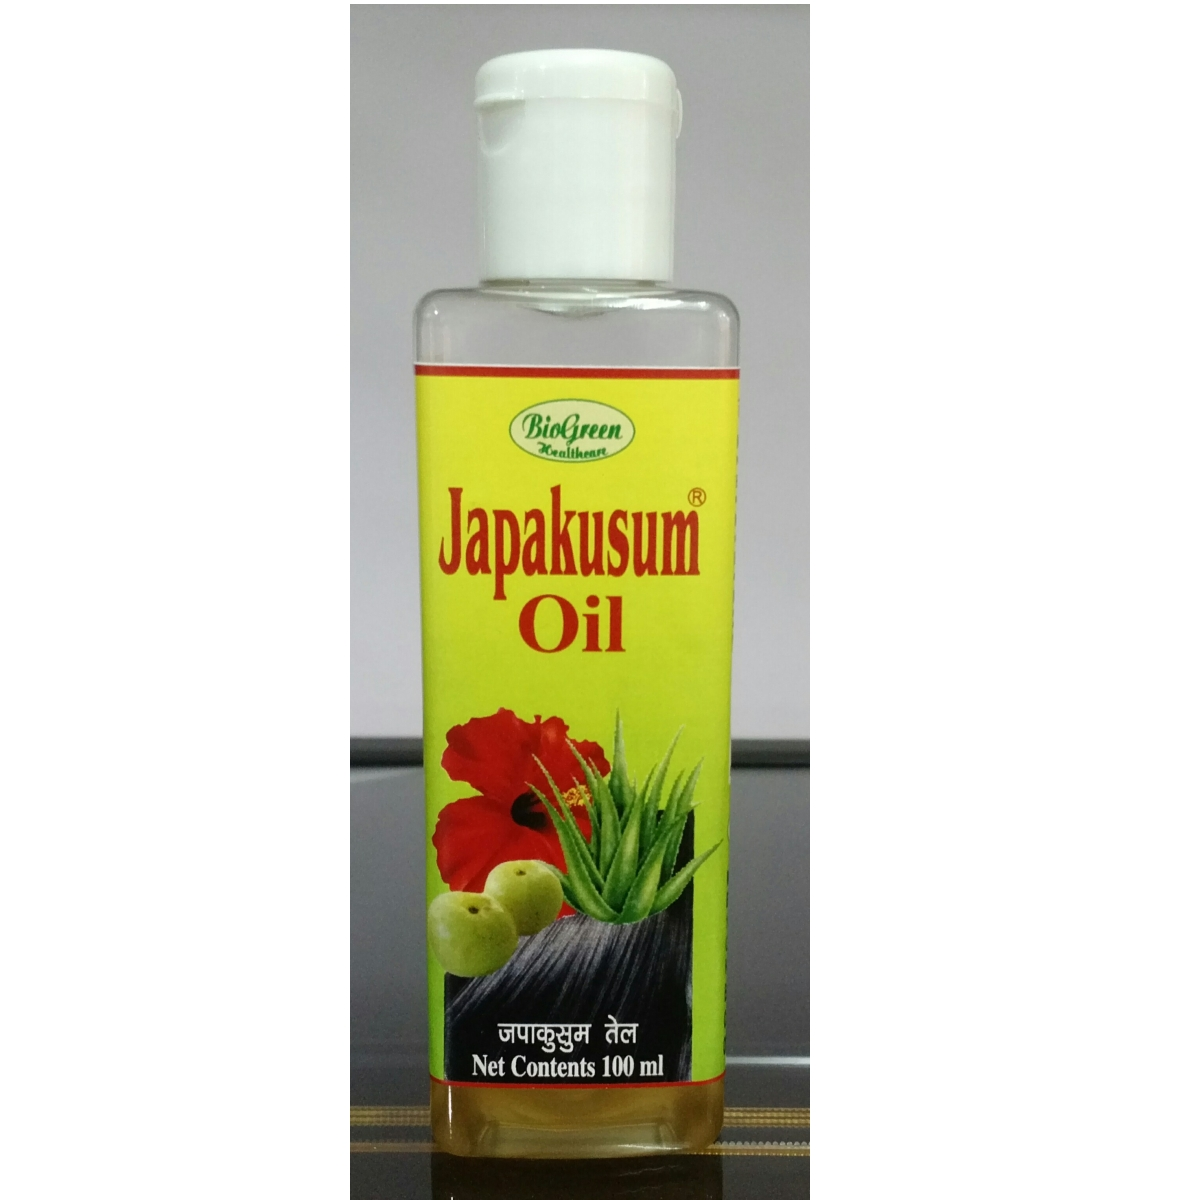 Japakusum Oil In Satna